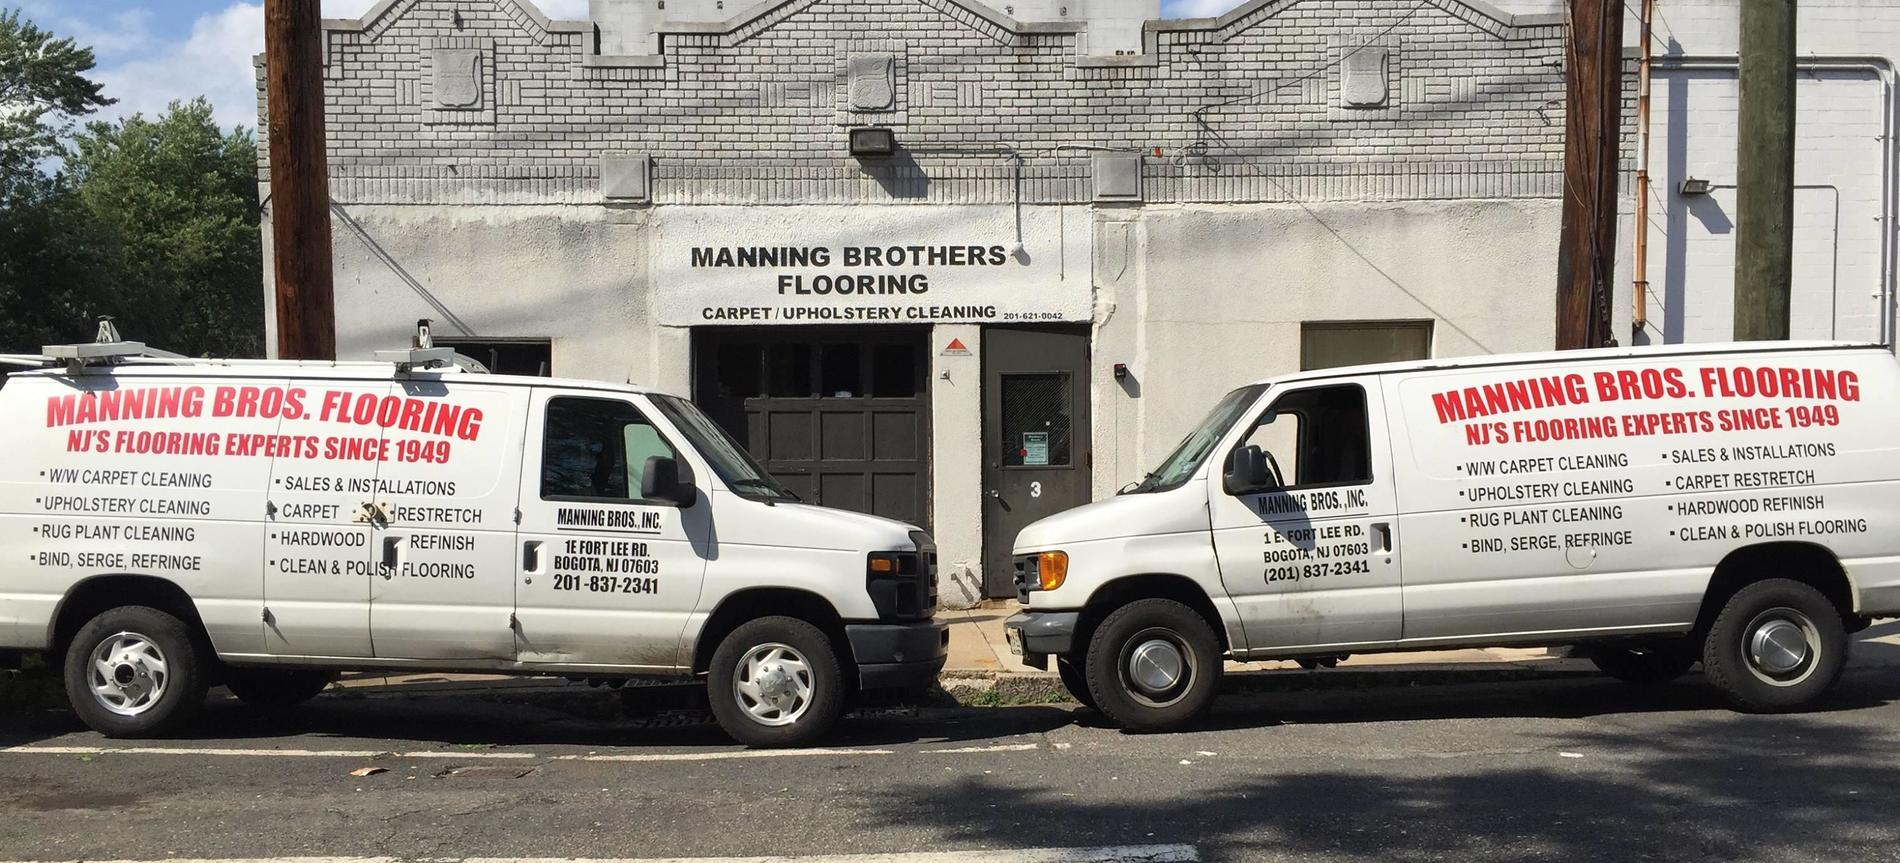 Manning Bros Carpet Amp Flooring In Bogota 3 East Fort Lee